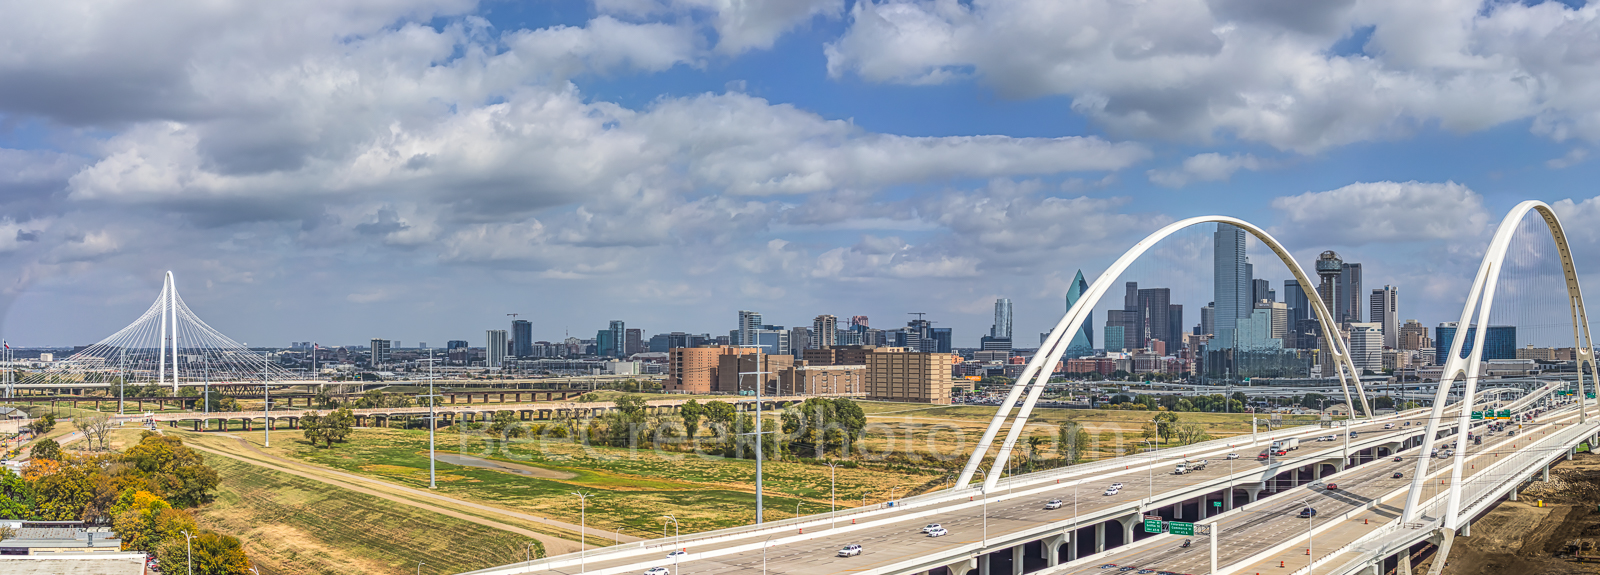 Dallas cityscape, pano, Margaret Hunt Hill bridge, Margaret McDermott bridge, Trinity River, dowtown, aerial, dallas skyline stock photos, clouds, blue sky,, photo